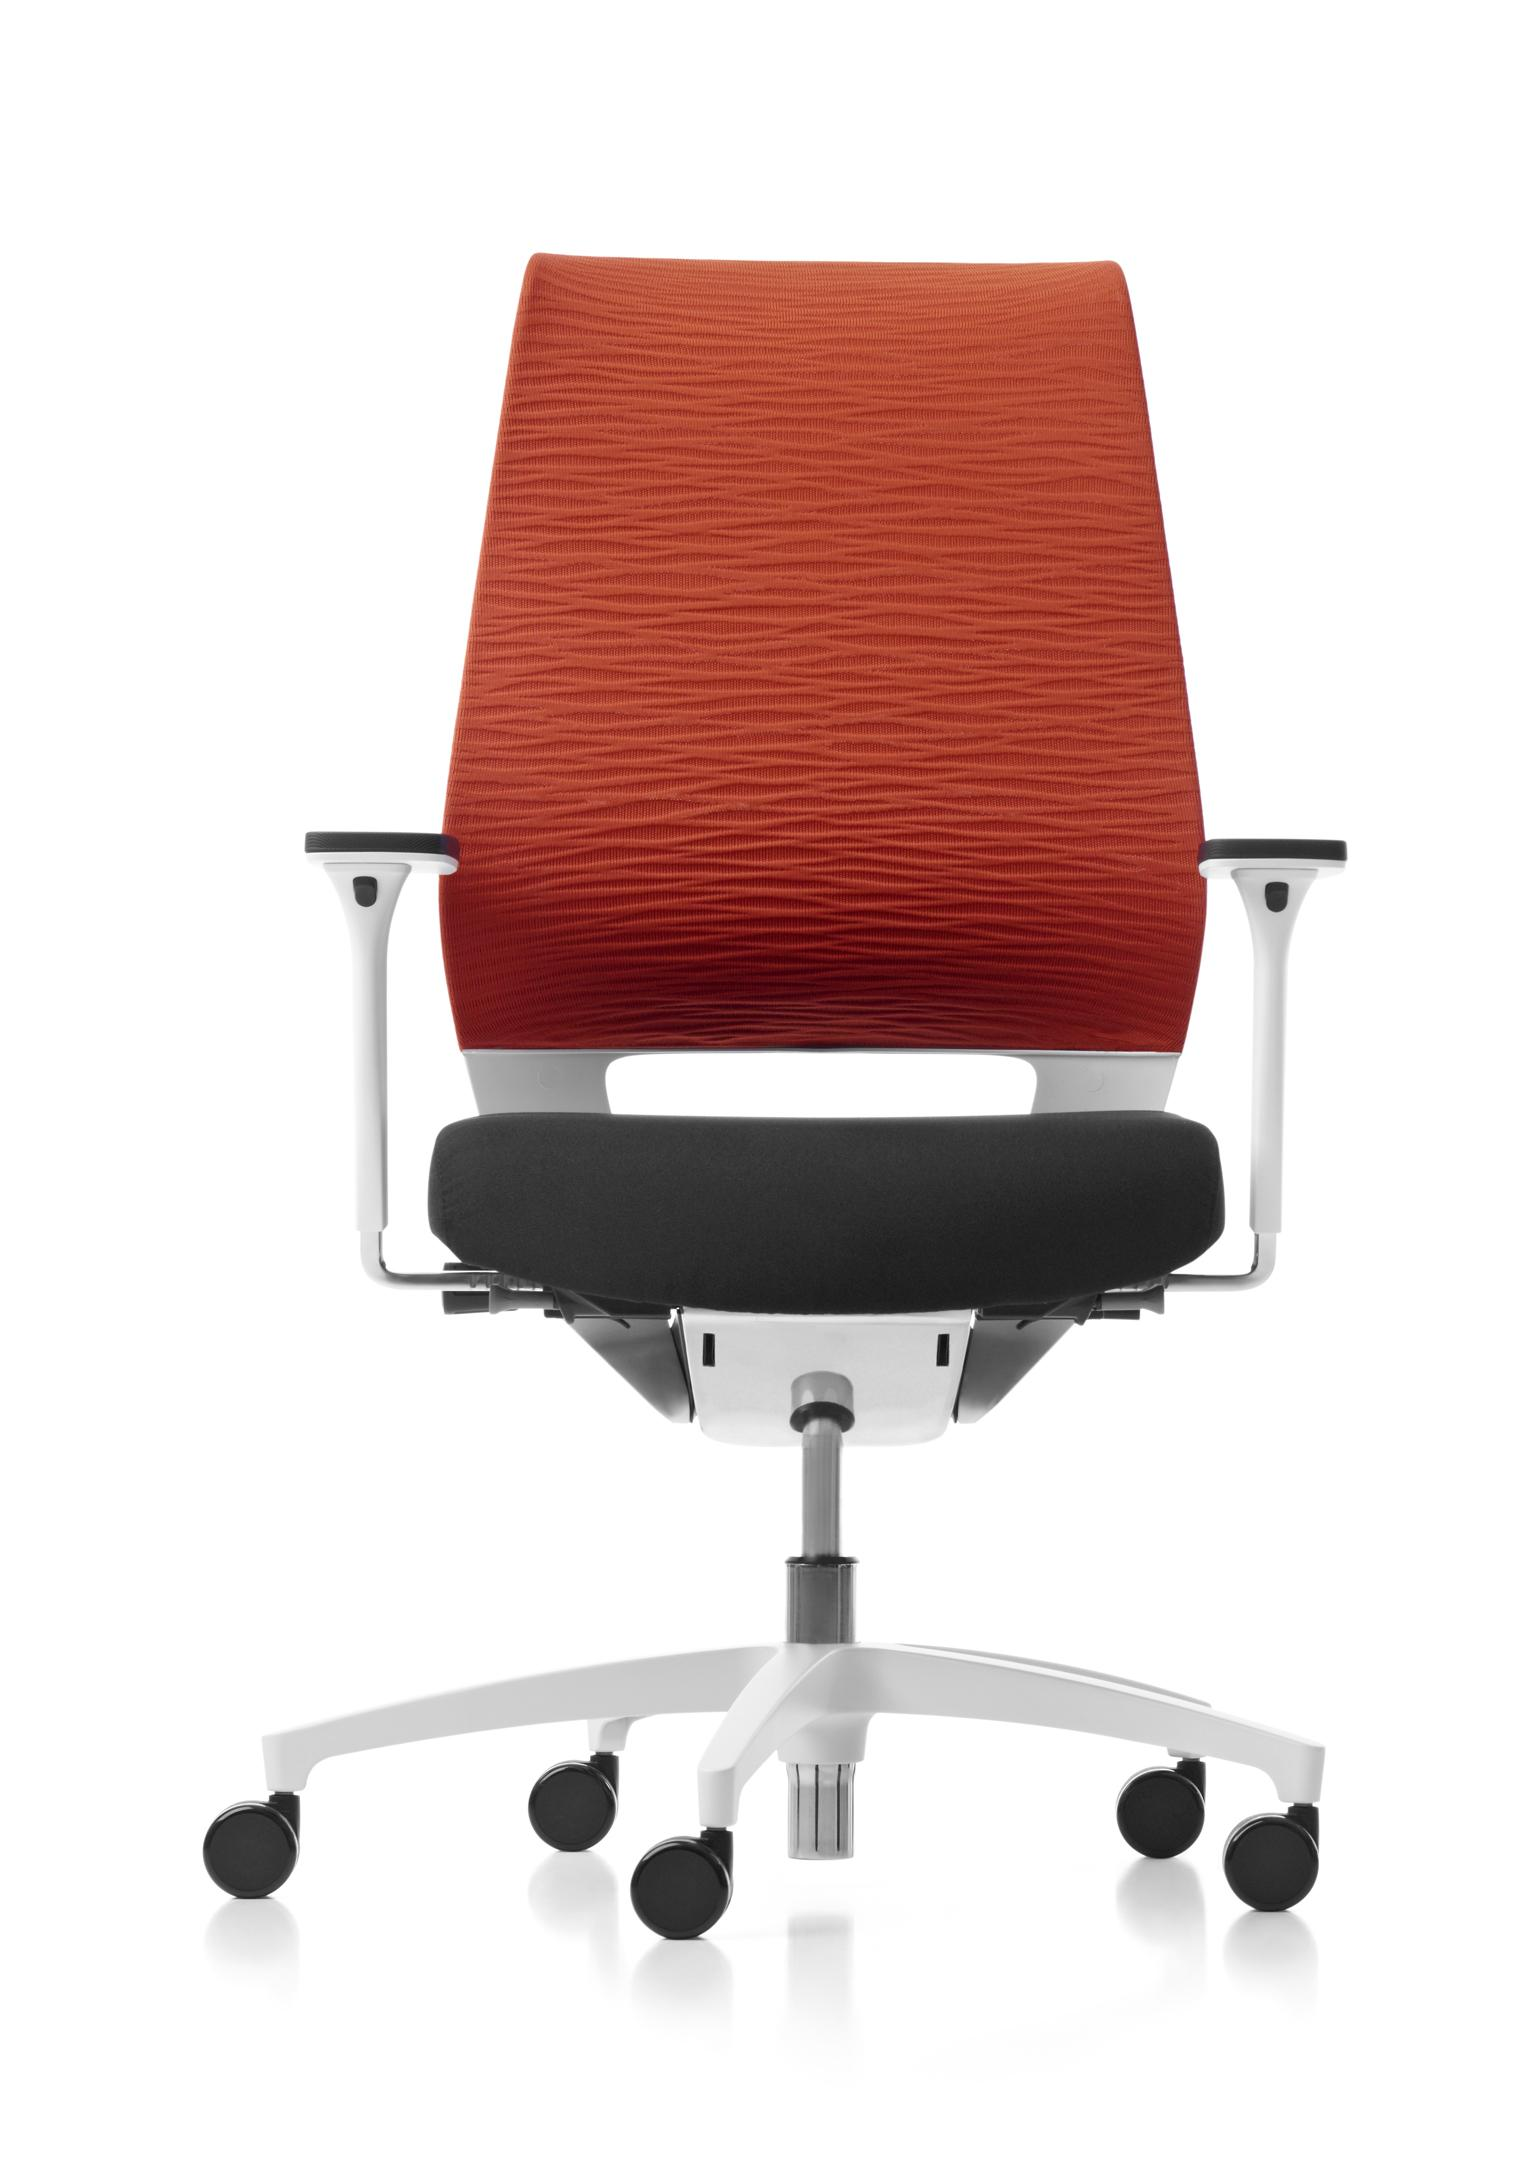 Dauphin Chairs Dauphin Office Chair BÃ Rostuhl Dauphin Shape Contemporary Office